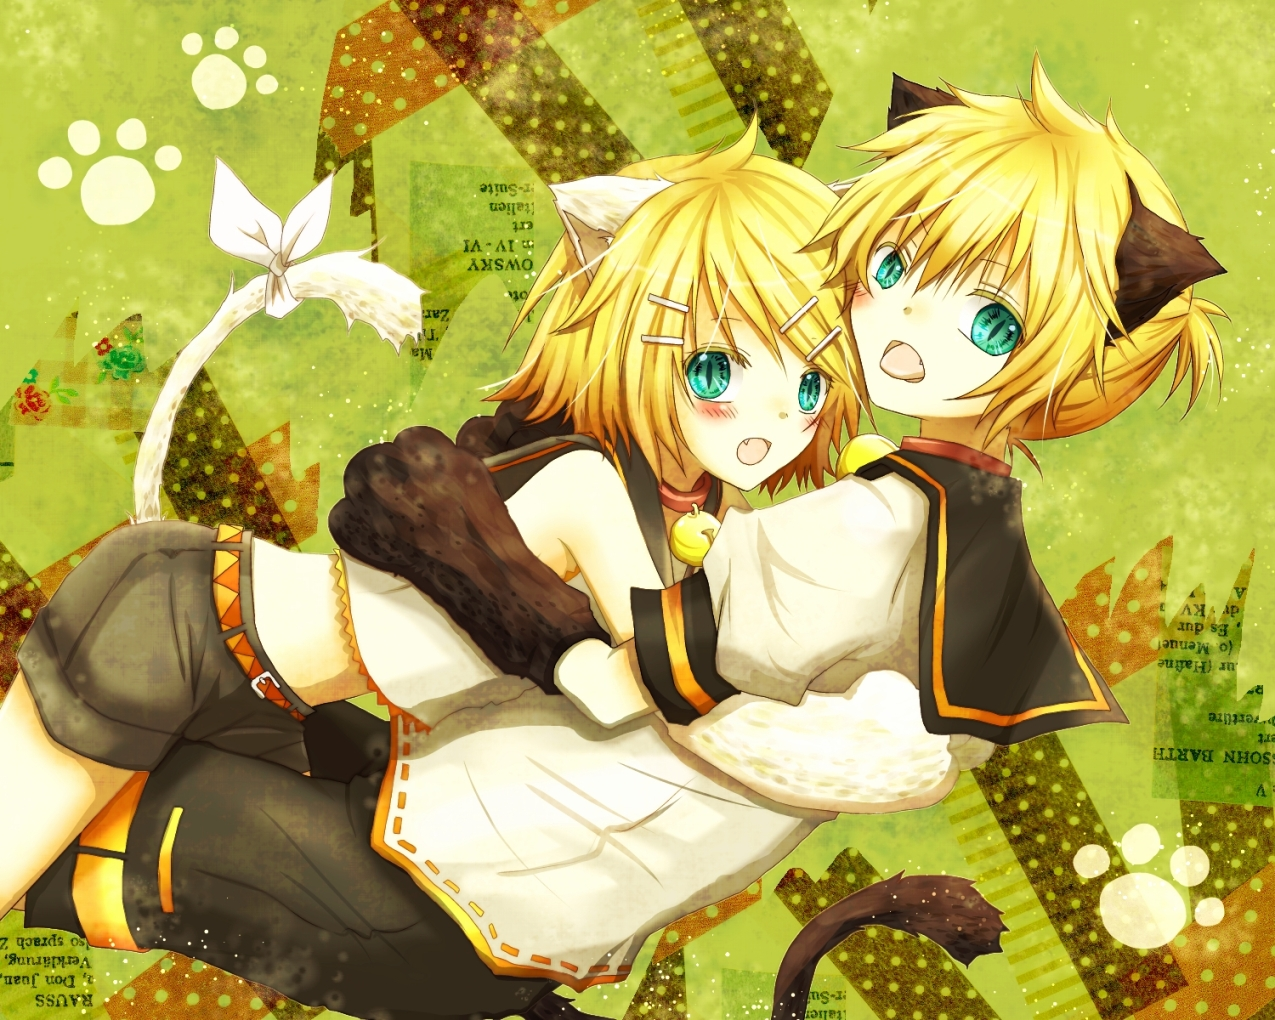 animal_ears blonde_hair catboy catgirl hug kagamine_len kagamine_rin male tail utaori vocaloid